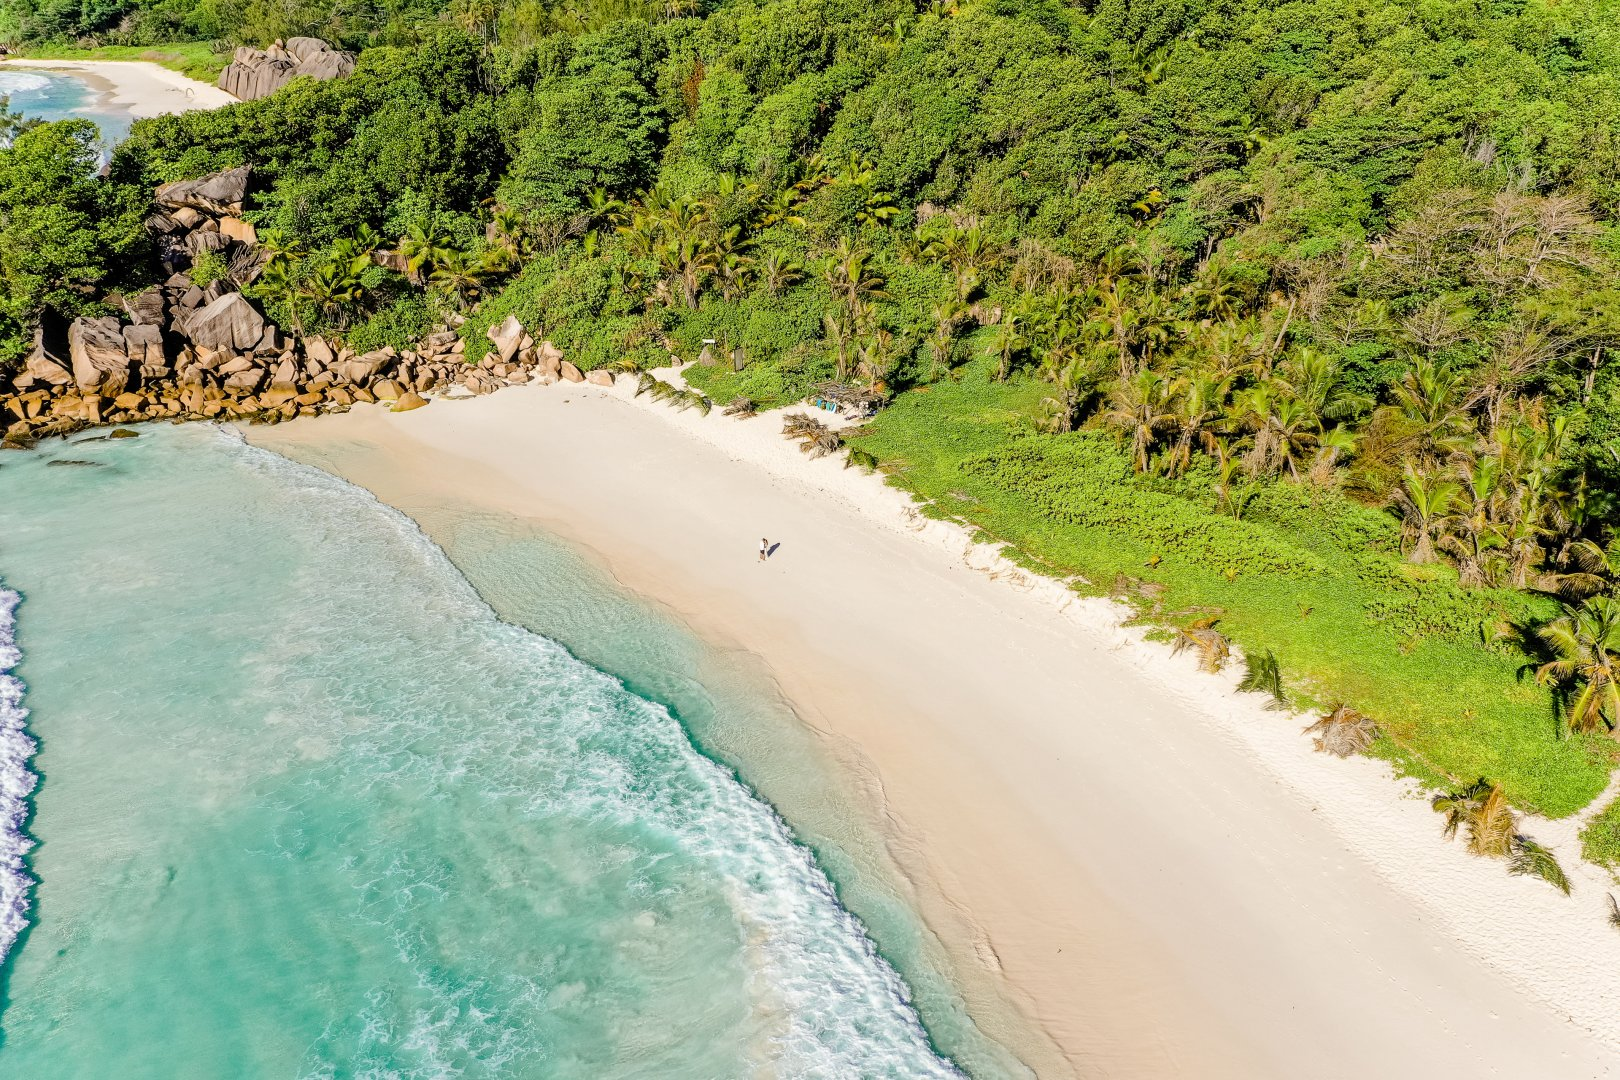 Body of water Coast Beach Shore Coastal and oceanic landforms Sea Water resources Bay Tropics Promontory Water Aerial photography Inlet Sand Cove Tree Ocean Vacation Headland Cape Bight Photography Tourism Watercourse Caribbean Landscape National park Plant Bank Wave